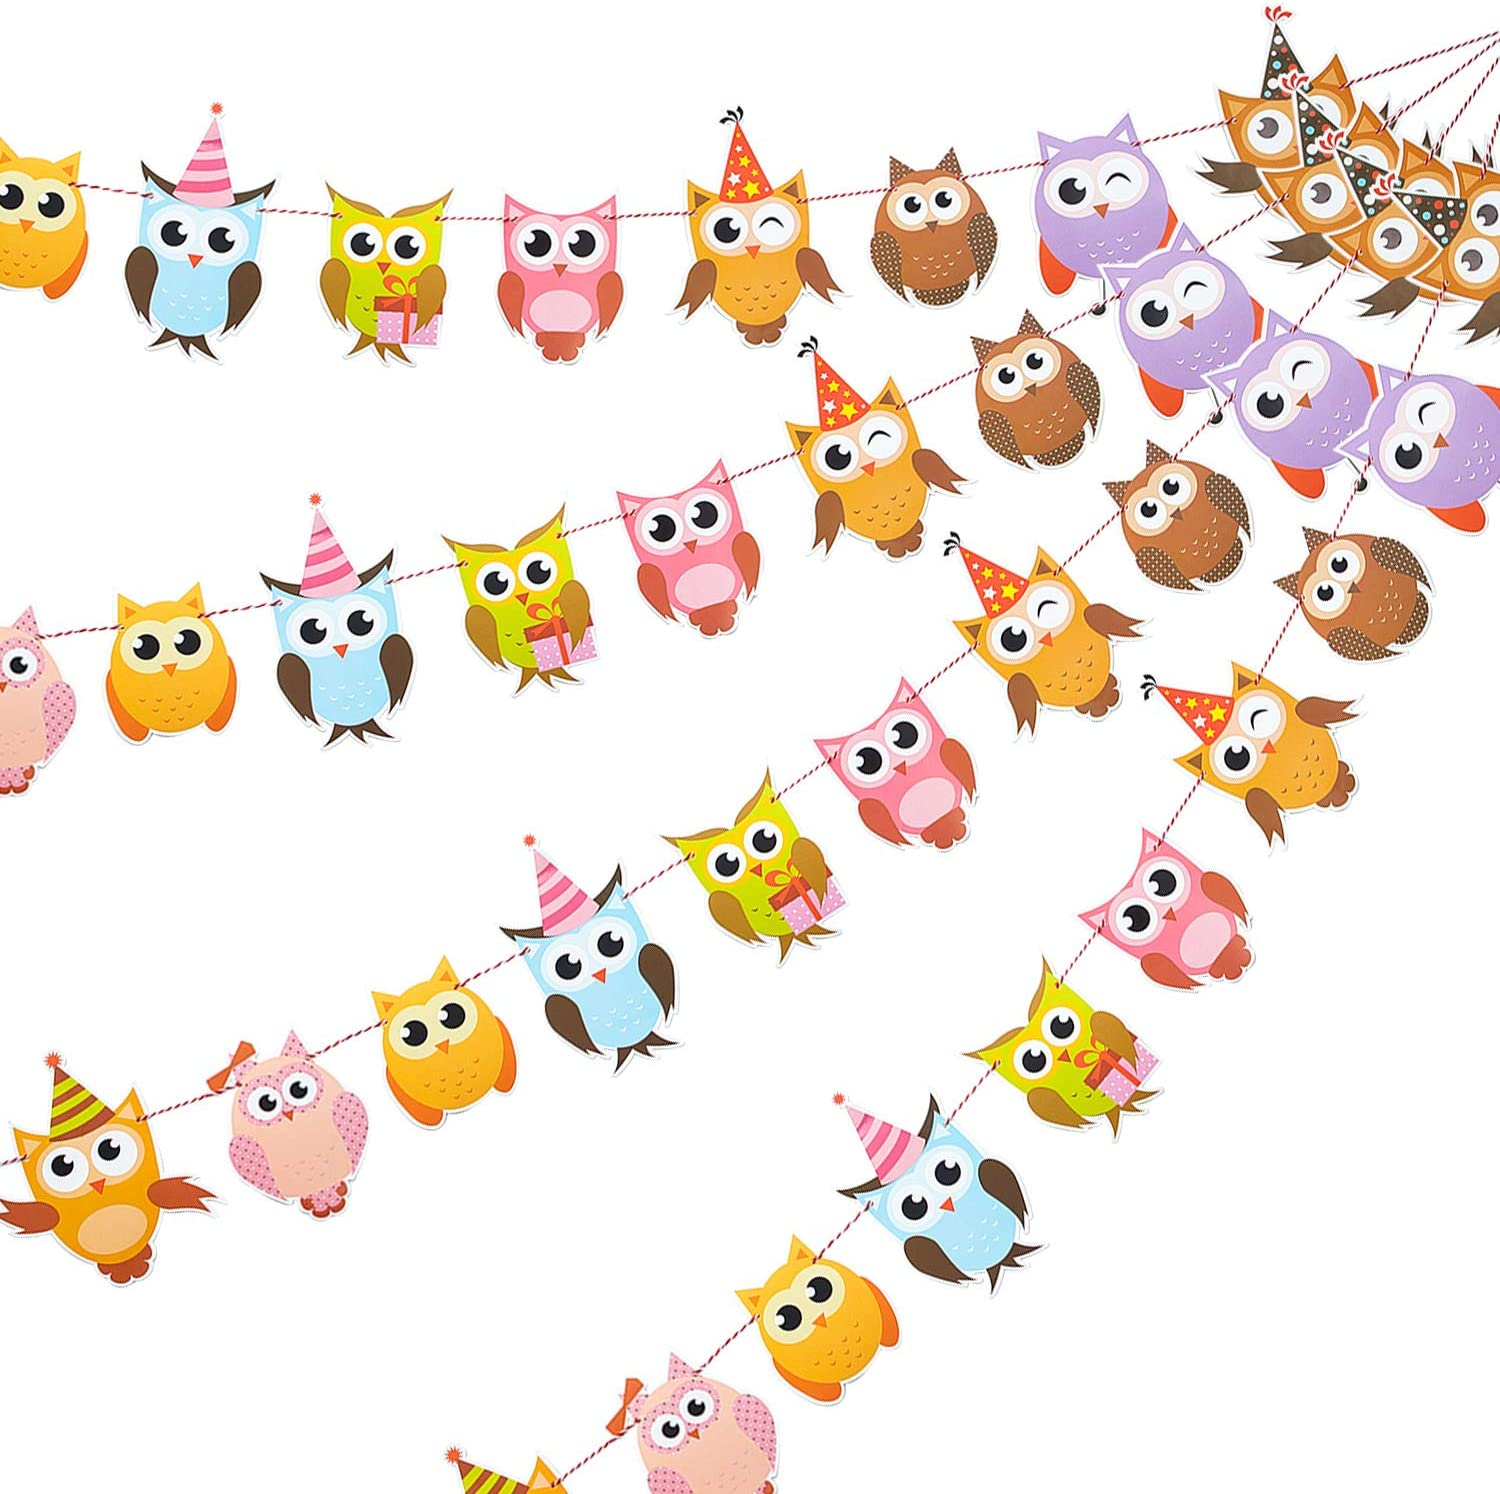 4 Pieces Owl Birthday Banners Colorful Owl Flag Banners Owl Print Bunting Banner Owl Themed Party Decorations for Baby Shower Birthday Party Supplies